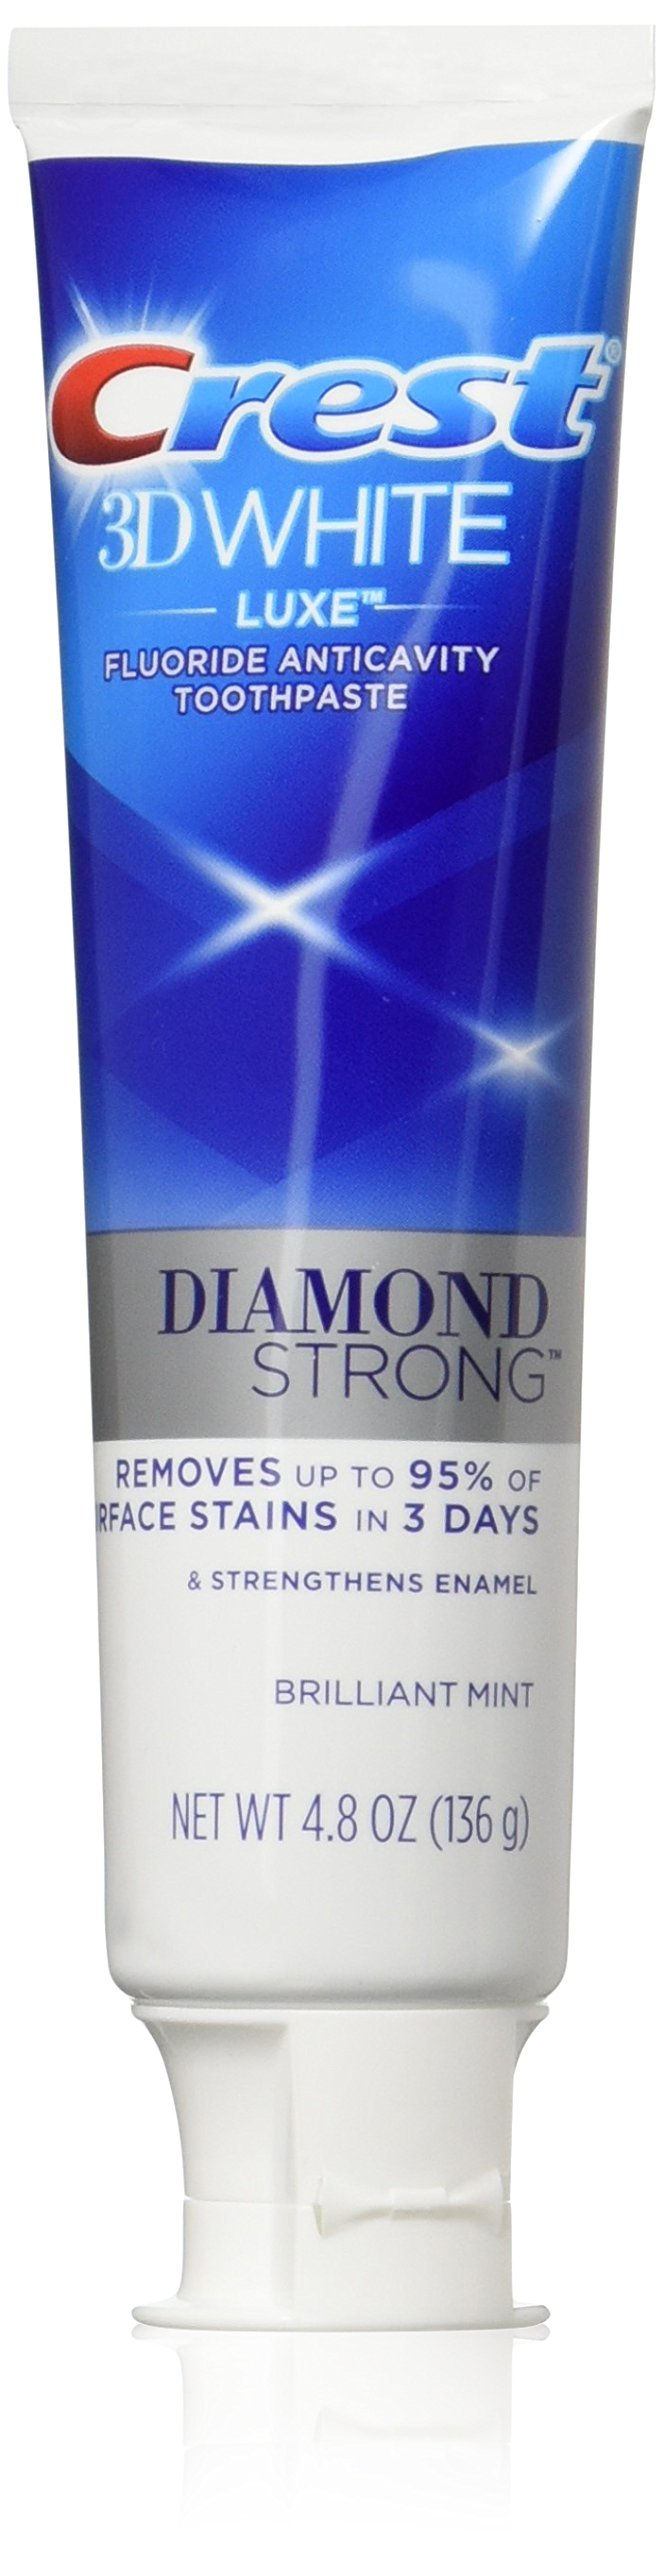 Crest 3D White Luxe Diamond Strong Toothpaste, 4.8 Ounce (Pack of 24)